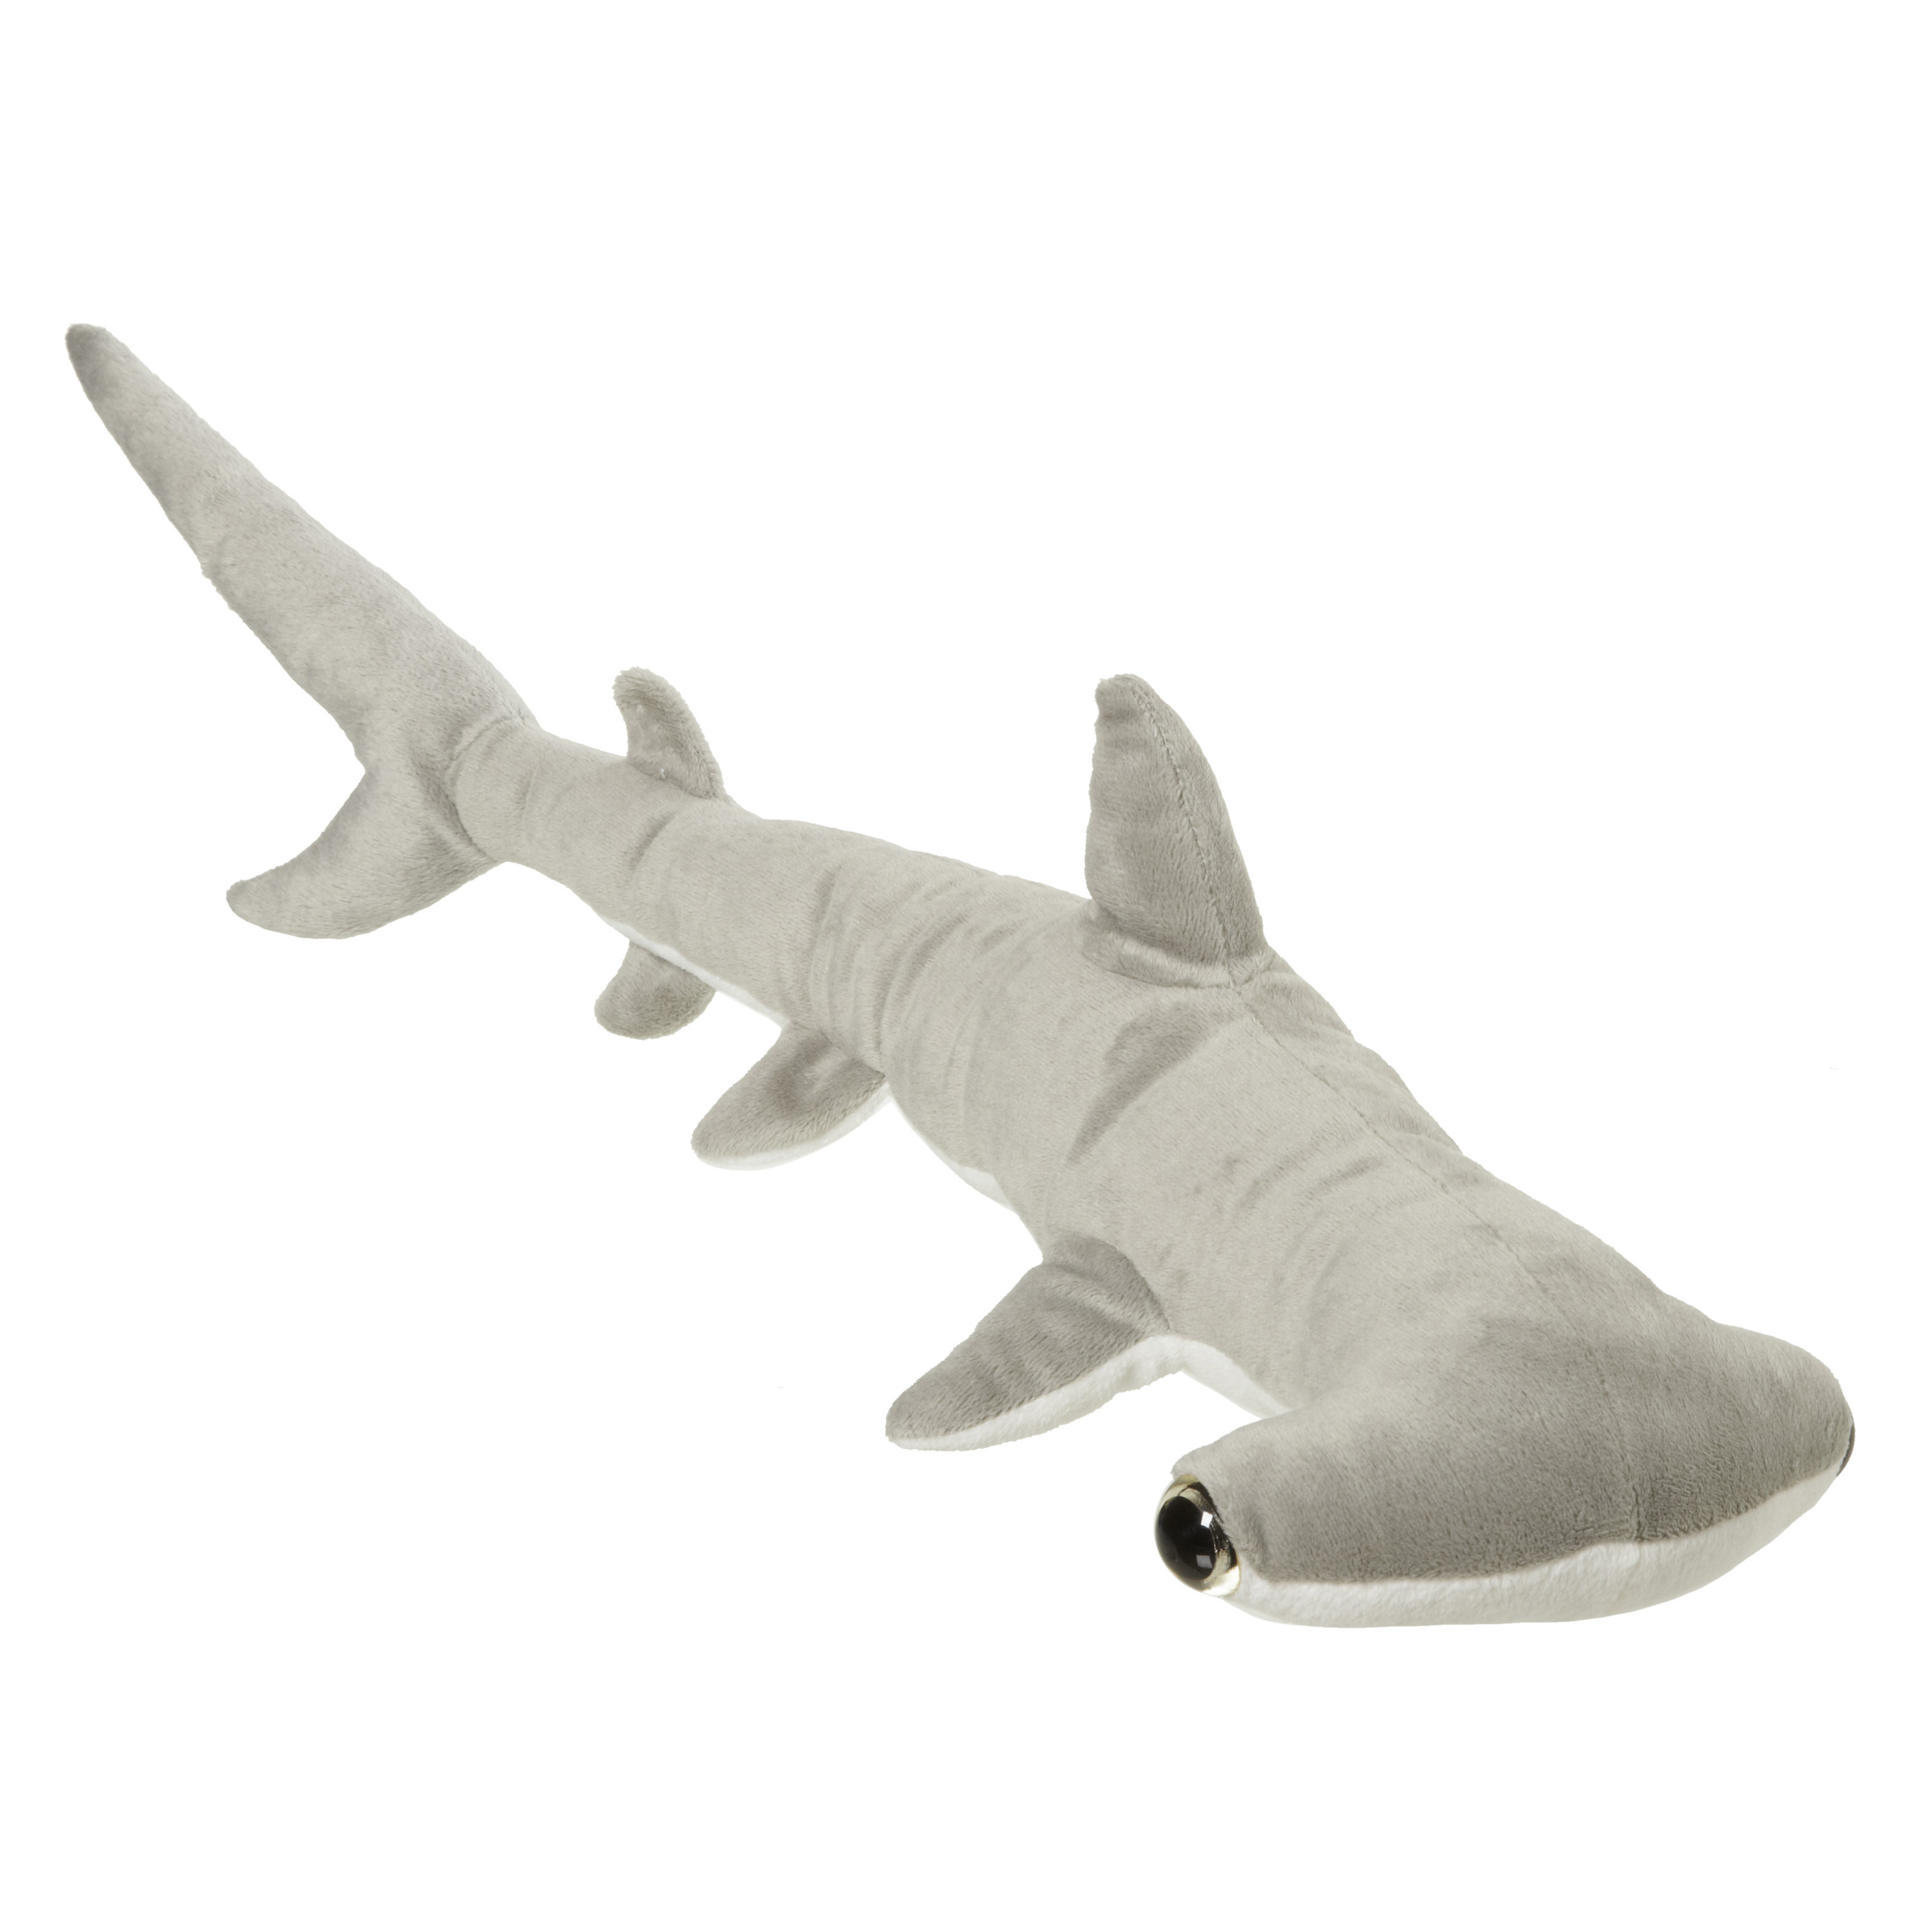 Tickles Red Shark Soft Toy Stuffed Plush For Kids 38 Cm At Low S In India